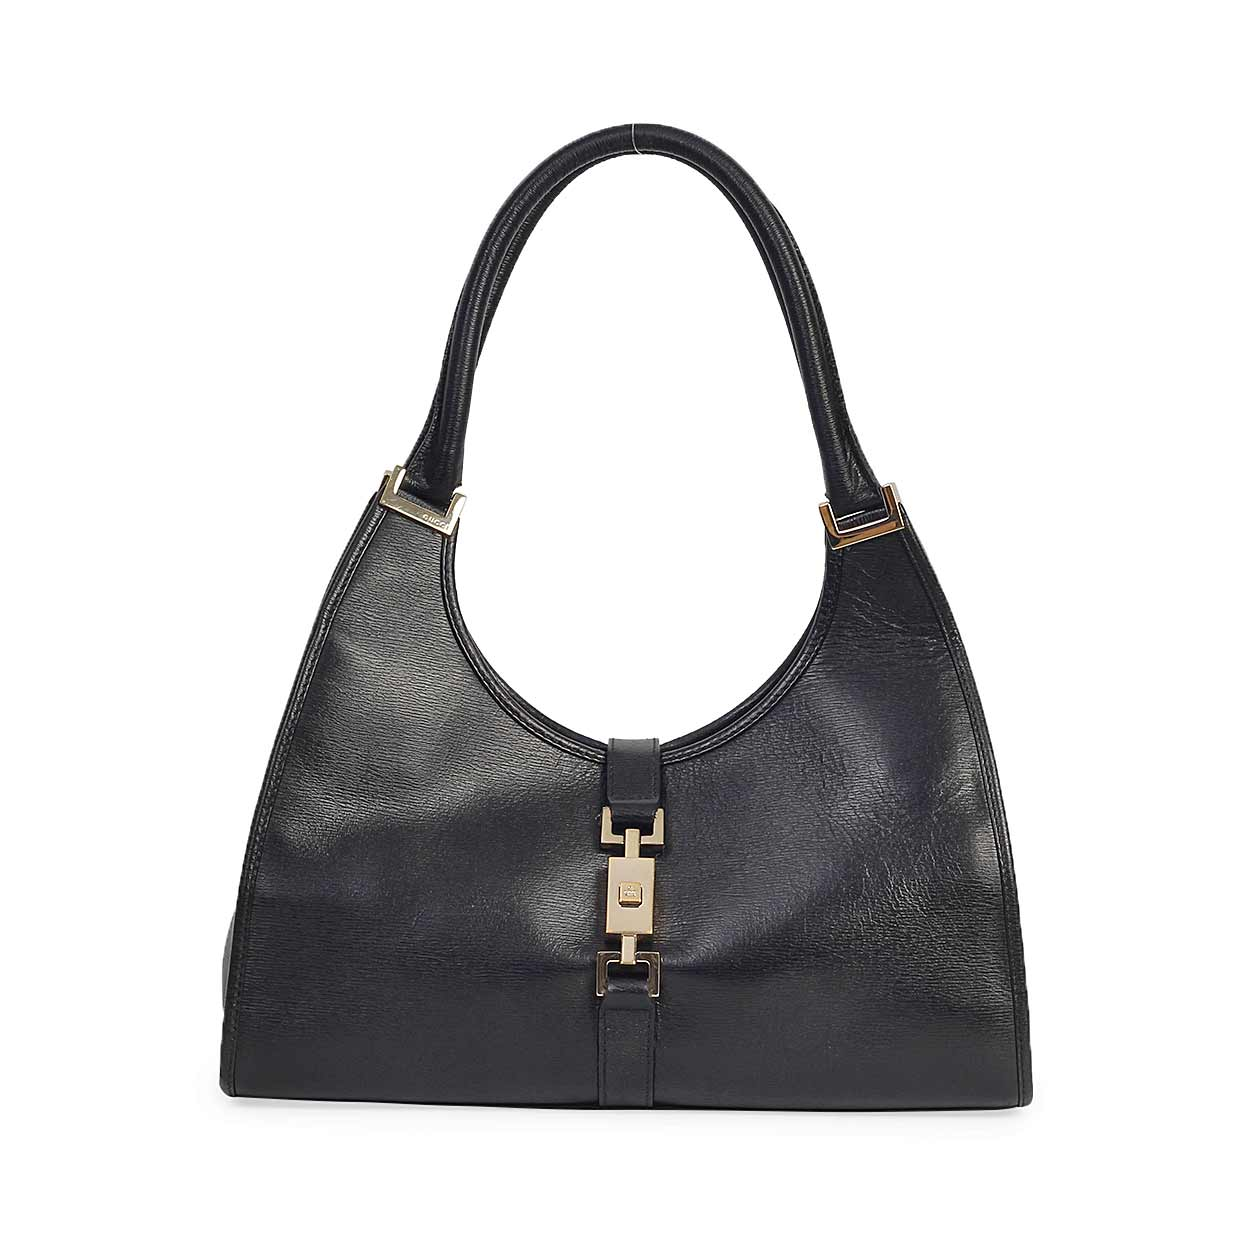 Gucci Vintage Leather Jackie O Bag